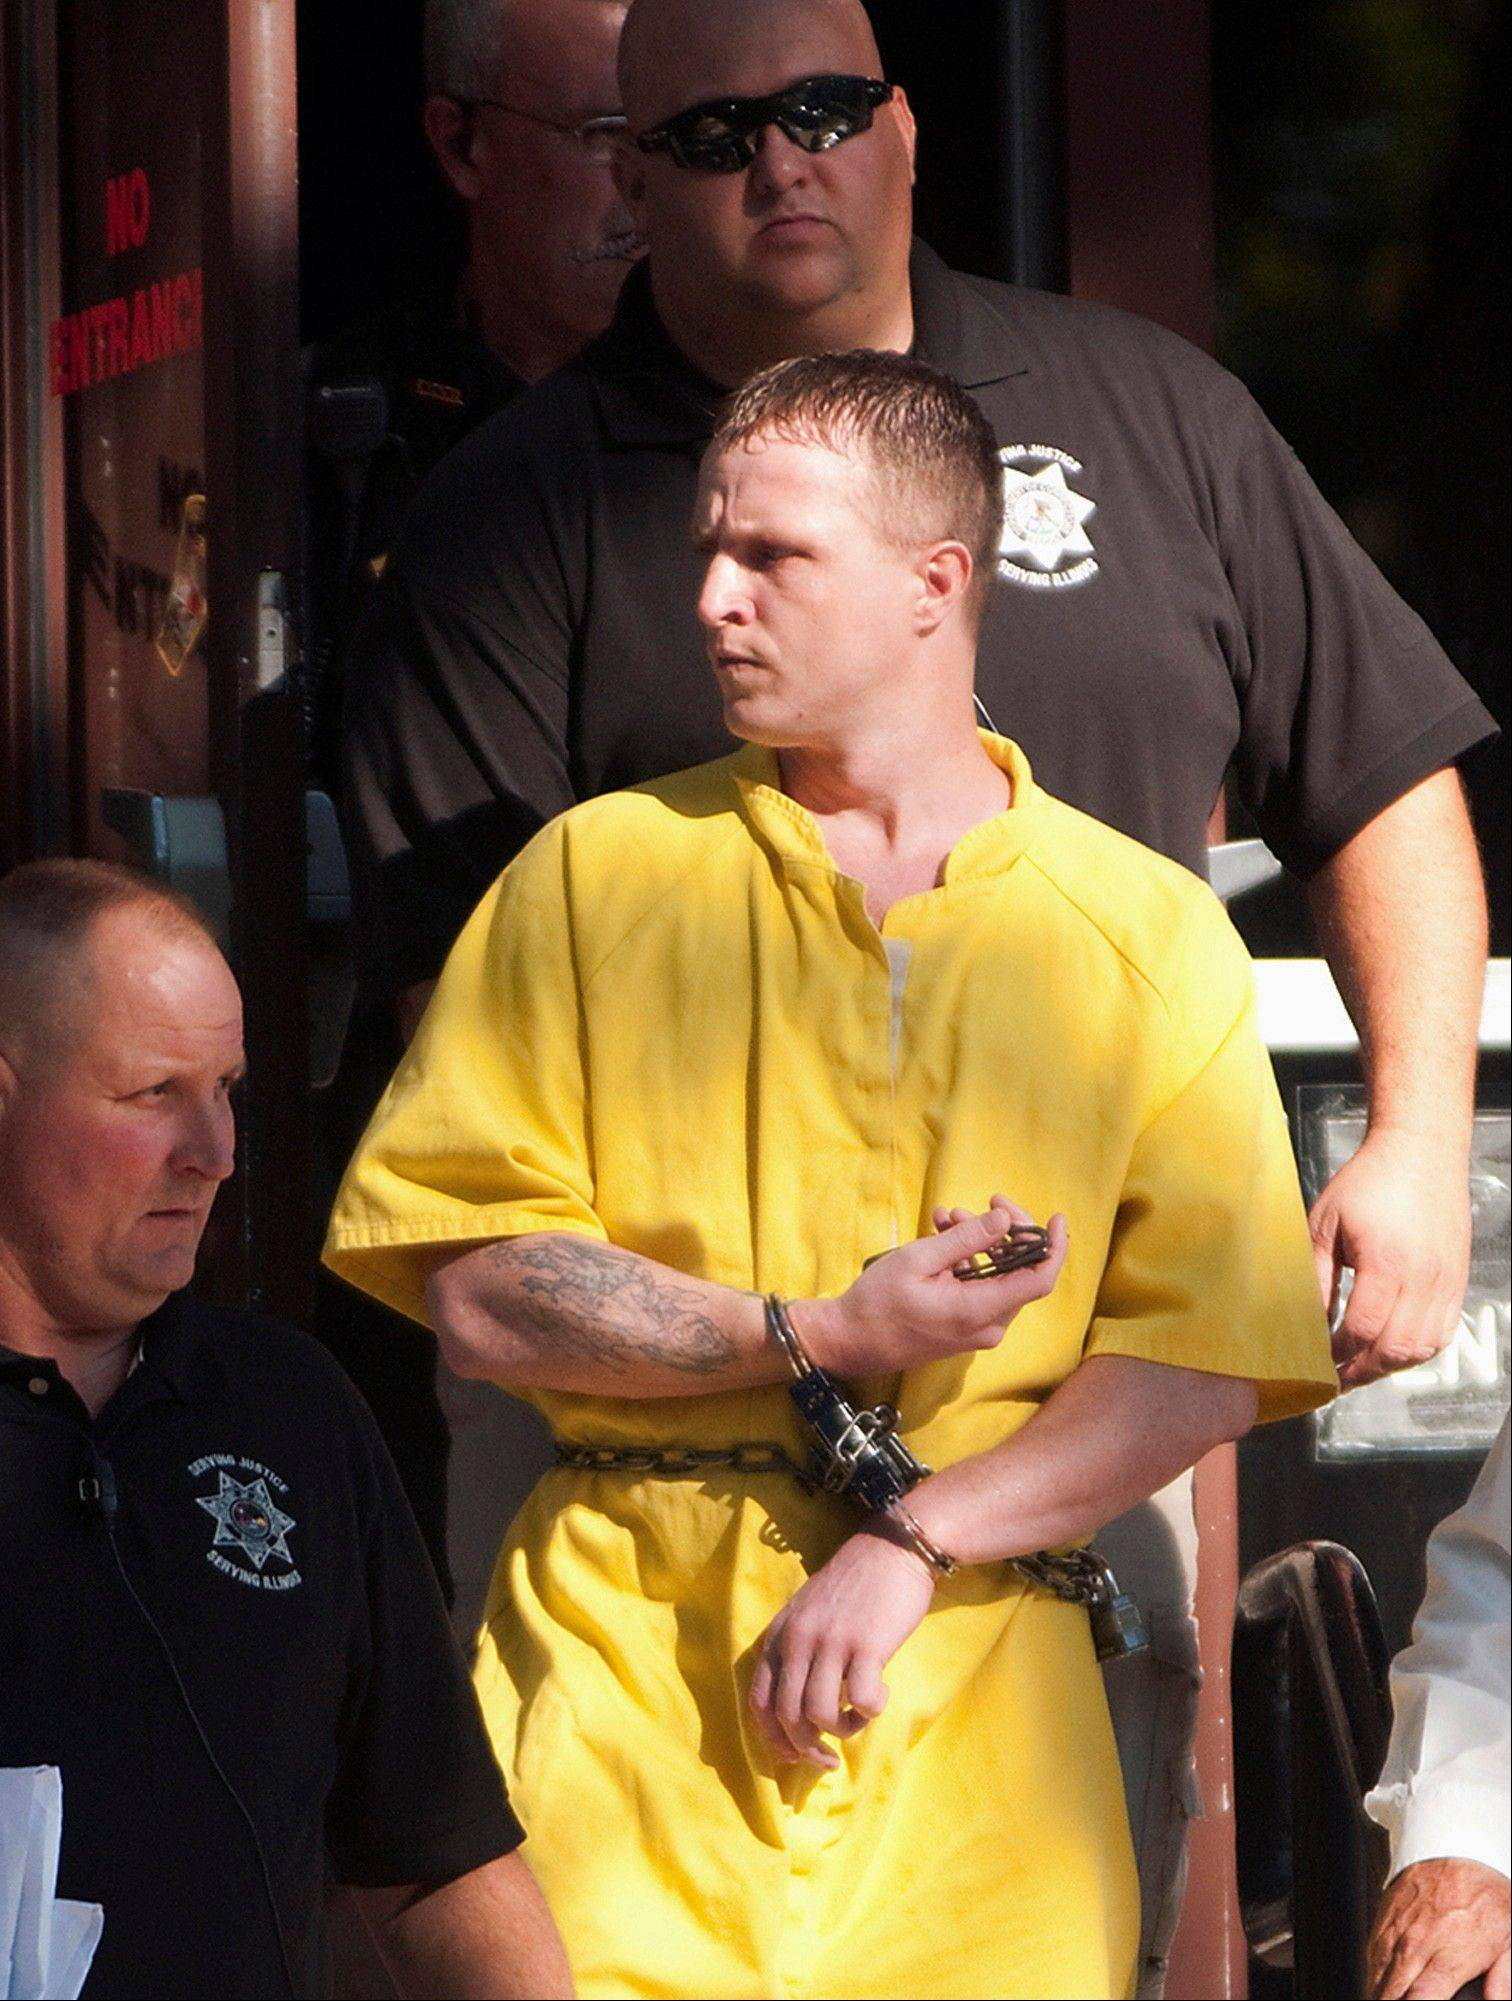 Nicholas Sheley is accused of bludgeoning eight people, including a 2-year-old boy, to death.